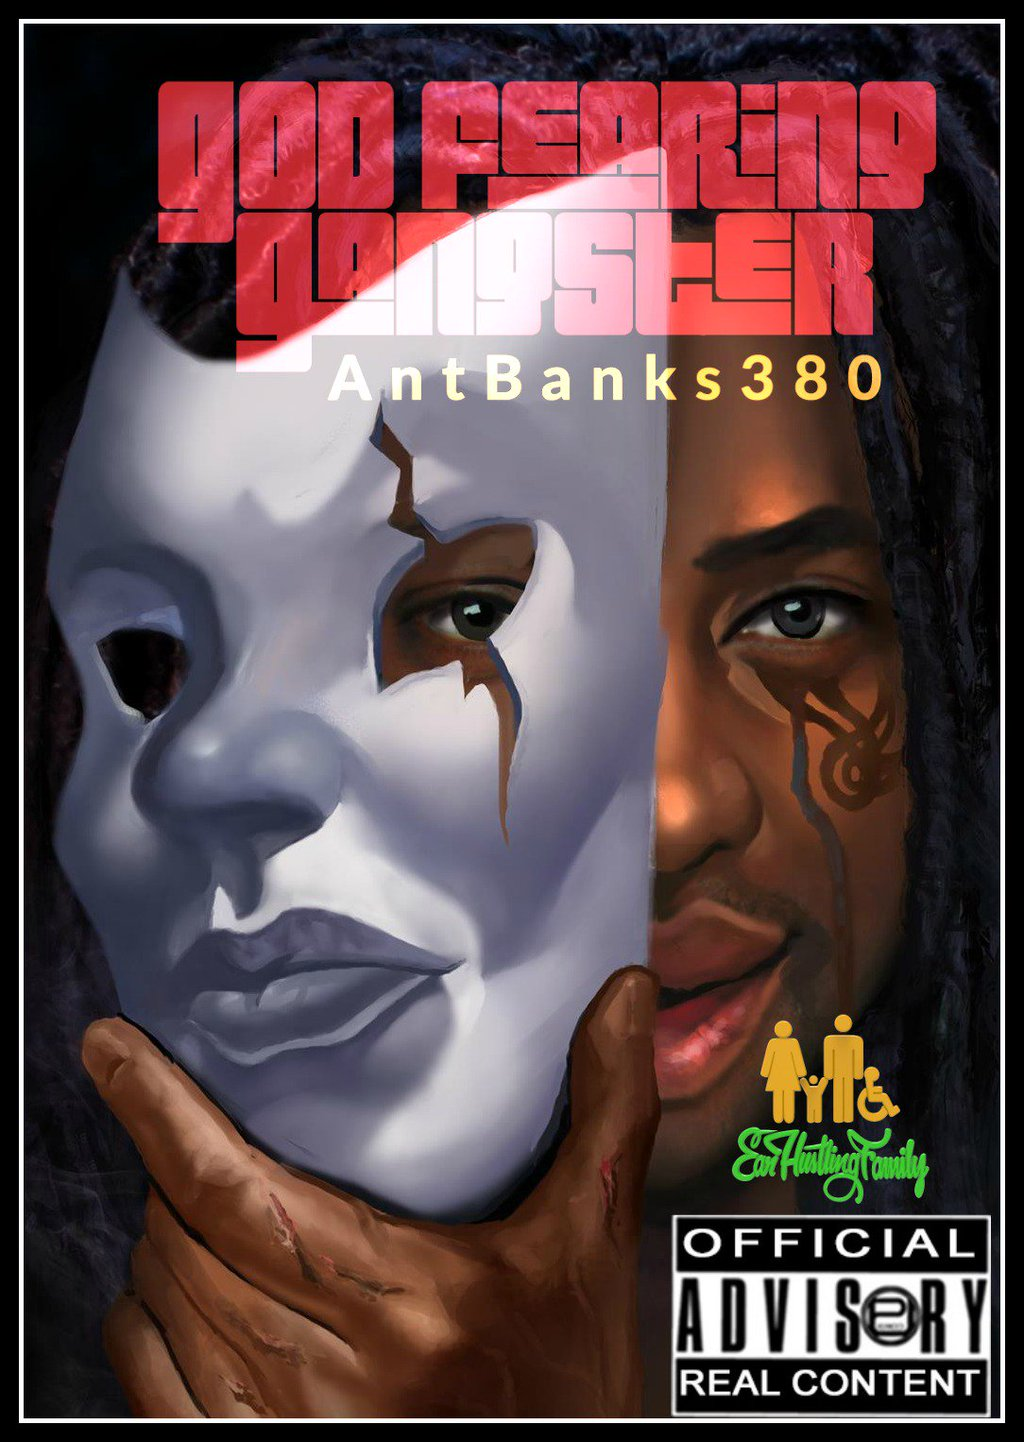 EarHustlingFamily Presents: AntBanks380